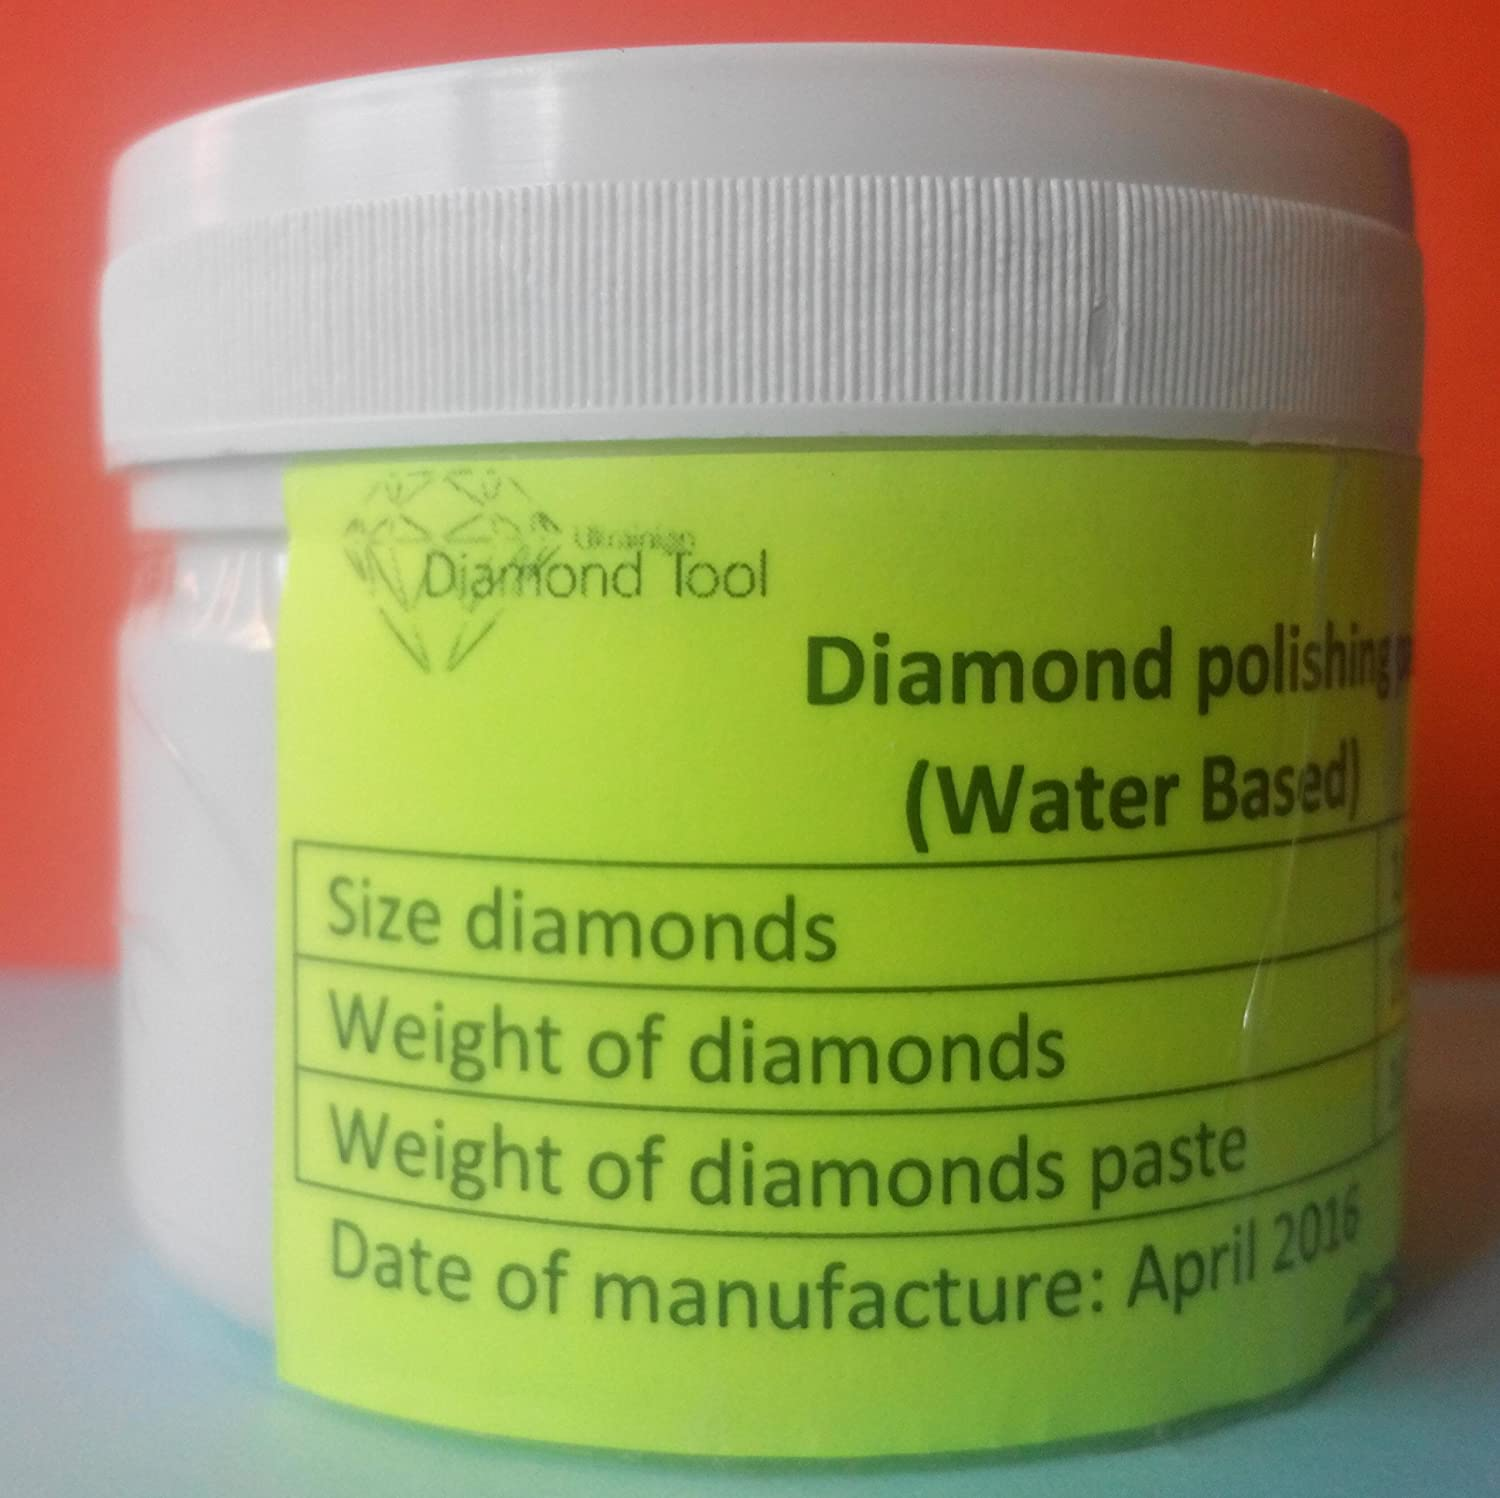 Normal Concentration Diamond Water-Based polishing Paste 1.0 Micron 100g